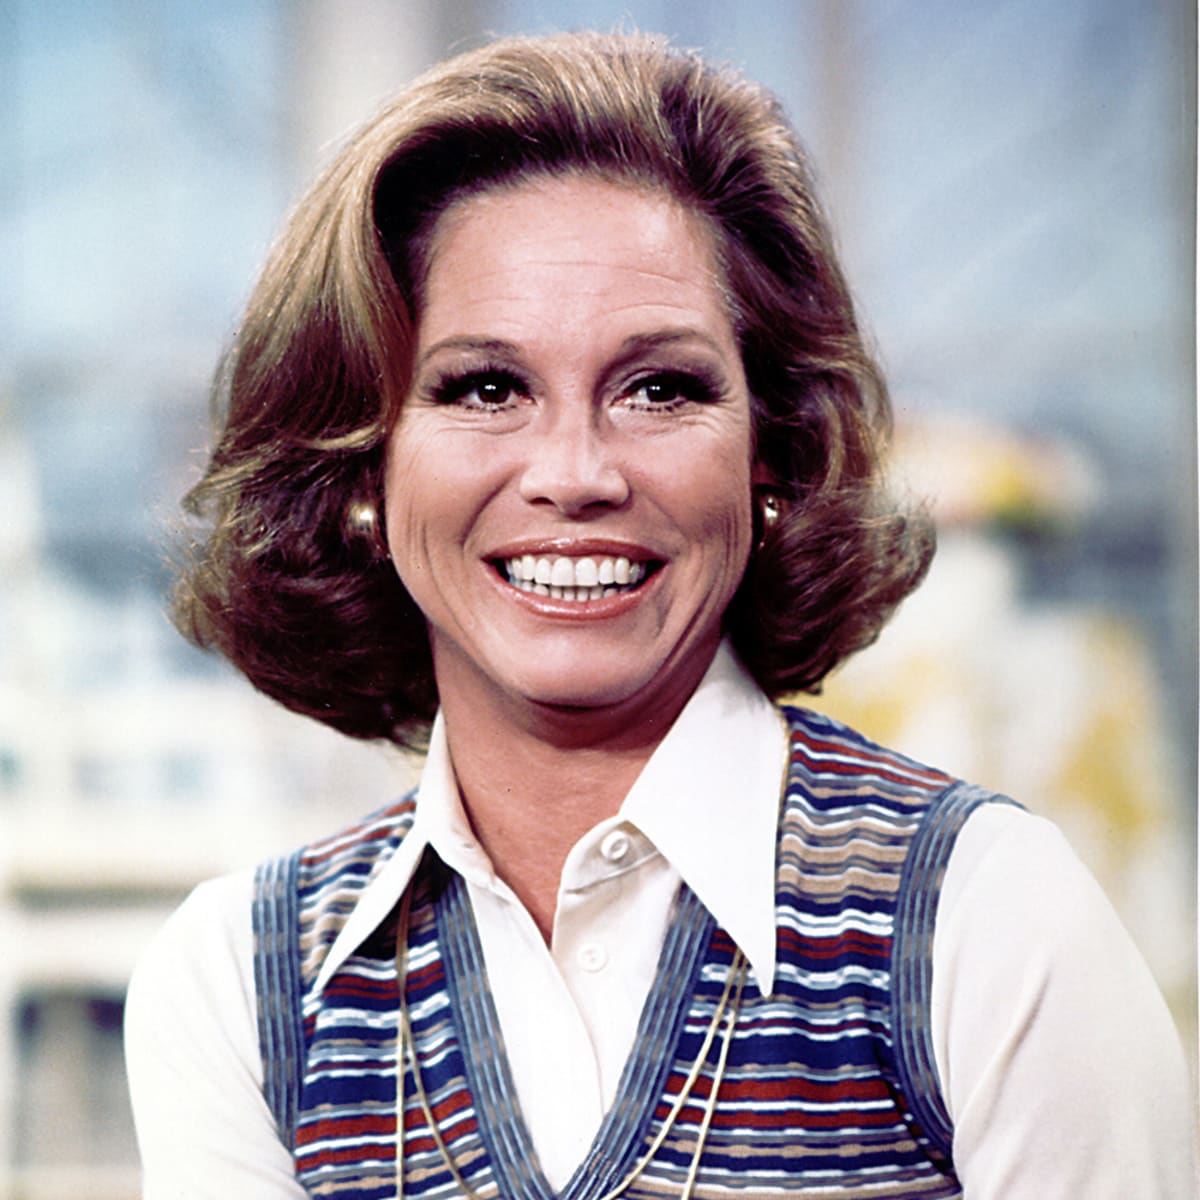 Mary Tyler Moore Gave laced ice cream To her brother and said that she would do it Again!